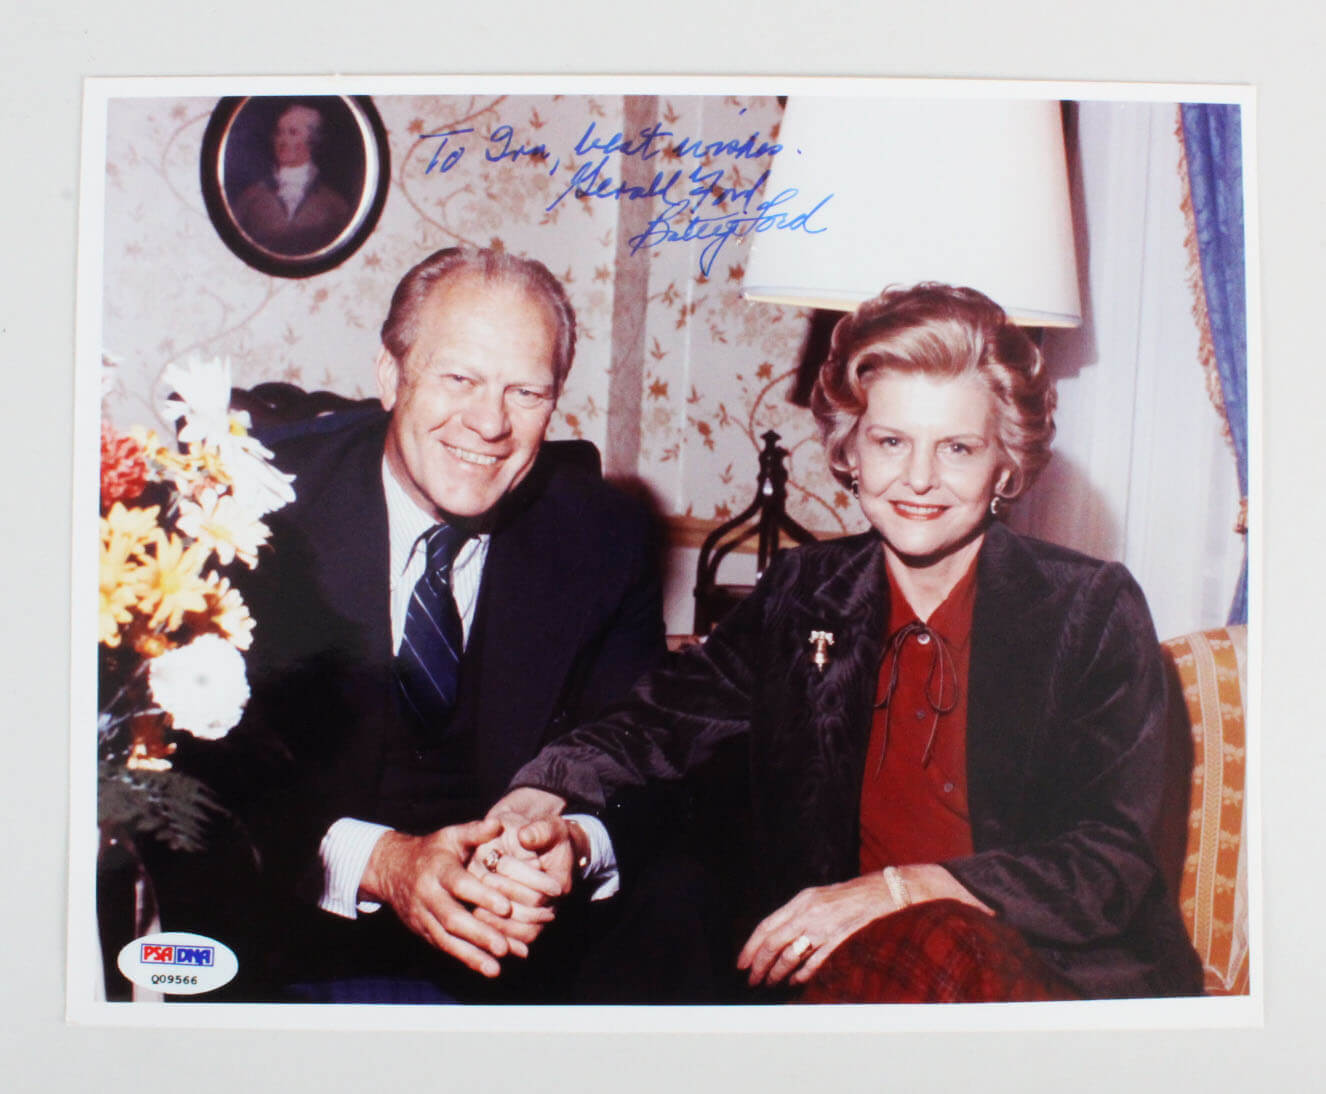 President Gerald Ford & Betty Ford Signed 8x10 Photo - PSA/DNA Full LOA